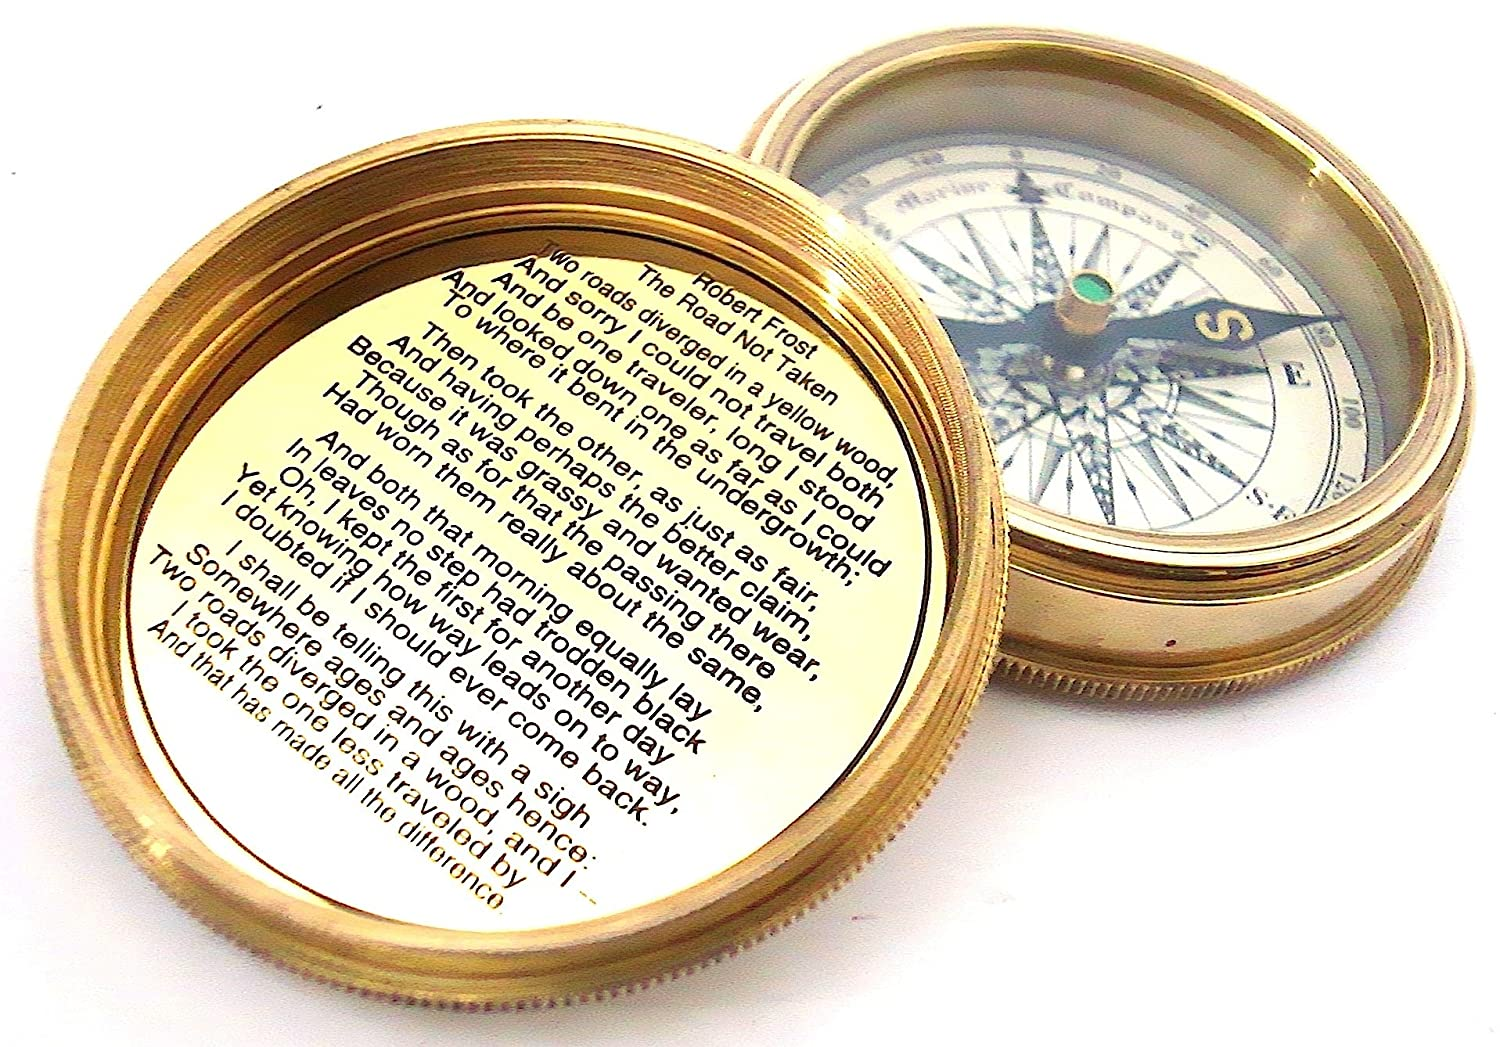 Brass Pocket Compass and Leather Case with Robert Frost Poem - Pocket Compass casanova nauticals S9-M4OW-SK1Y